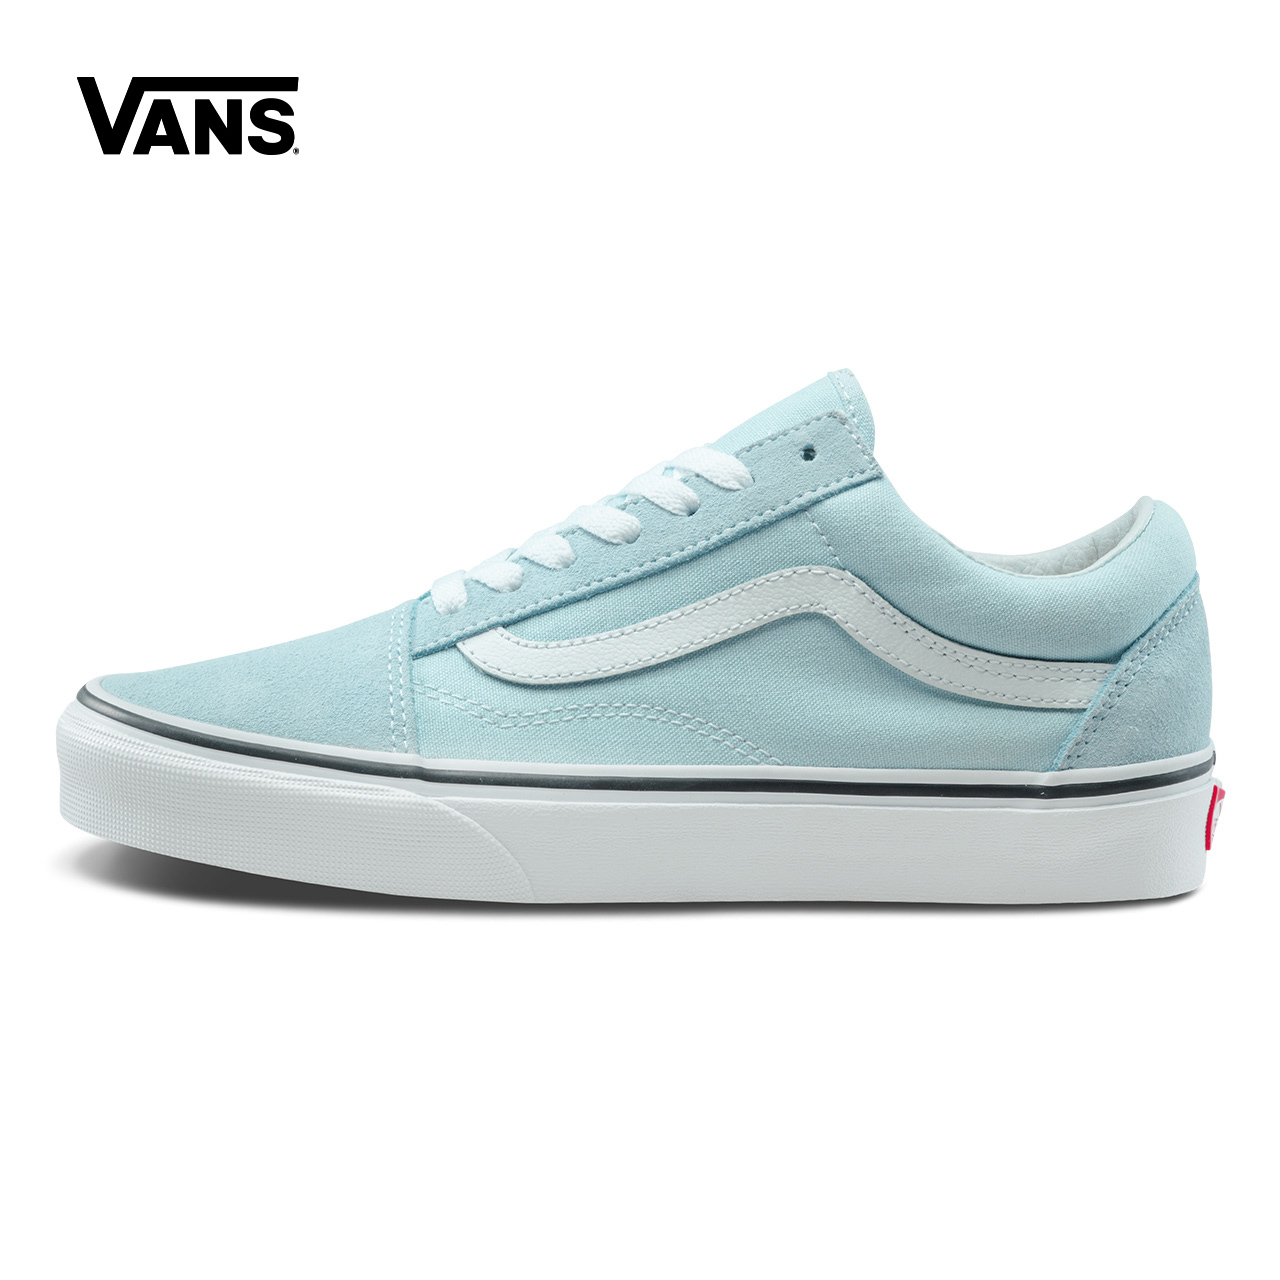 Original New Arrival Vans Womens Classic Old Skool Low-top Skateboarding Shoes Sneakers Canvas Comfortable VN0A38G1Q6K/Q6L